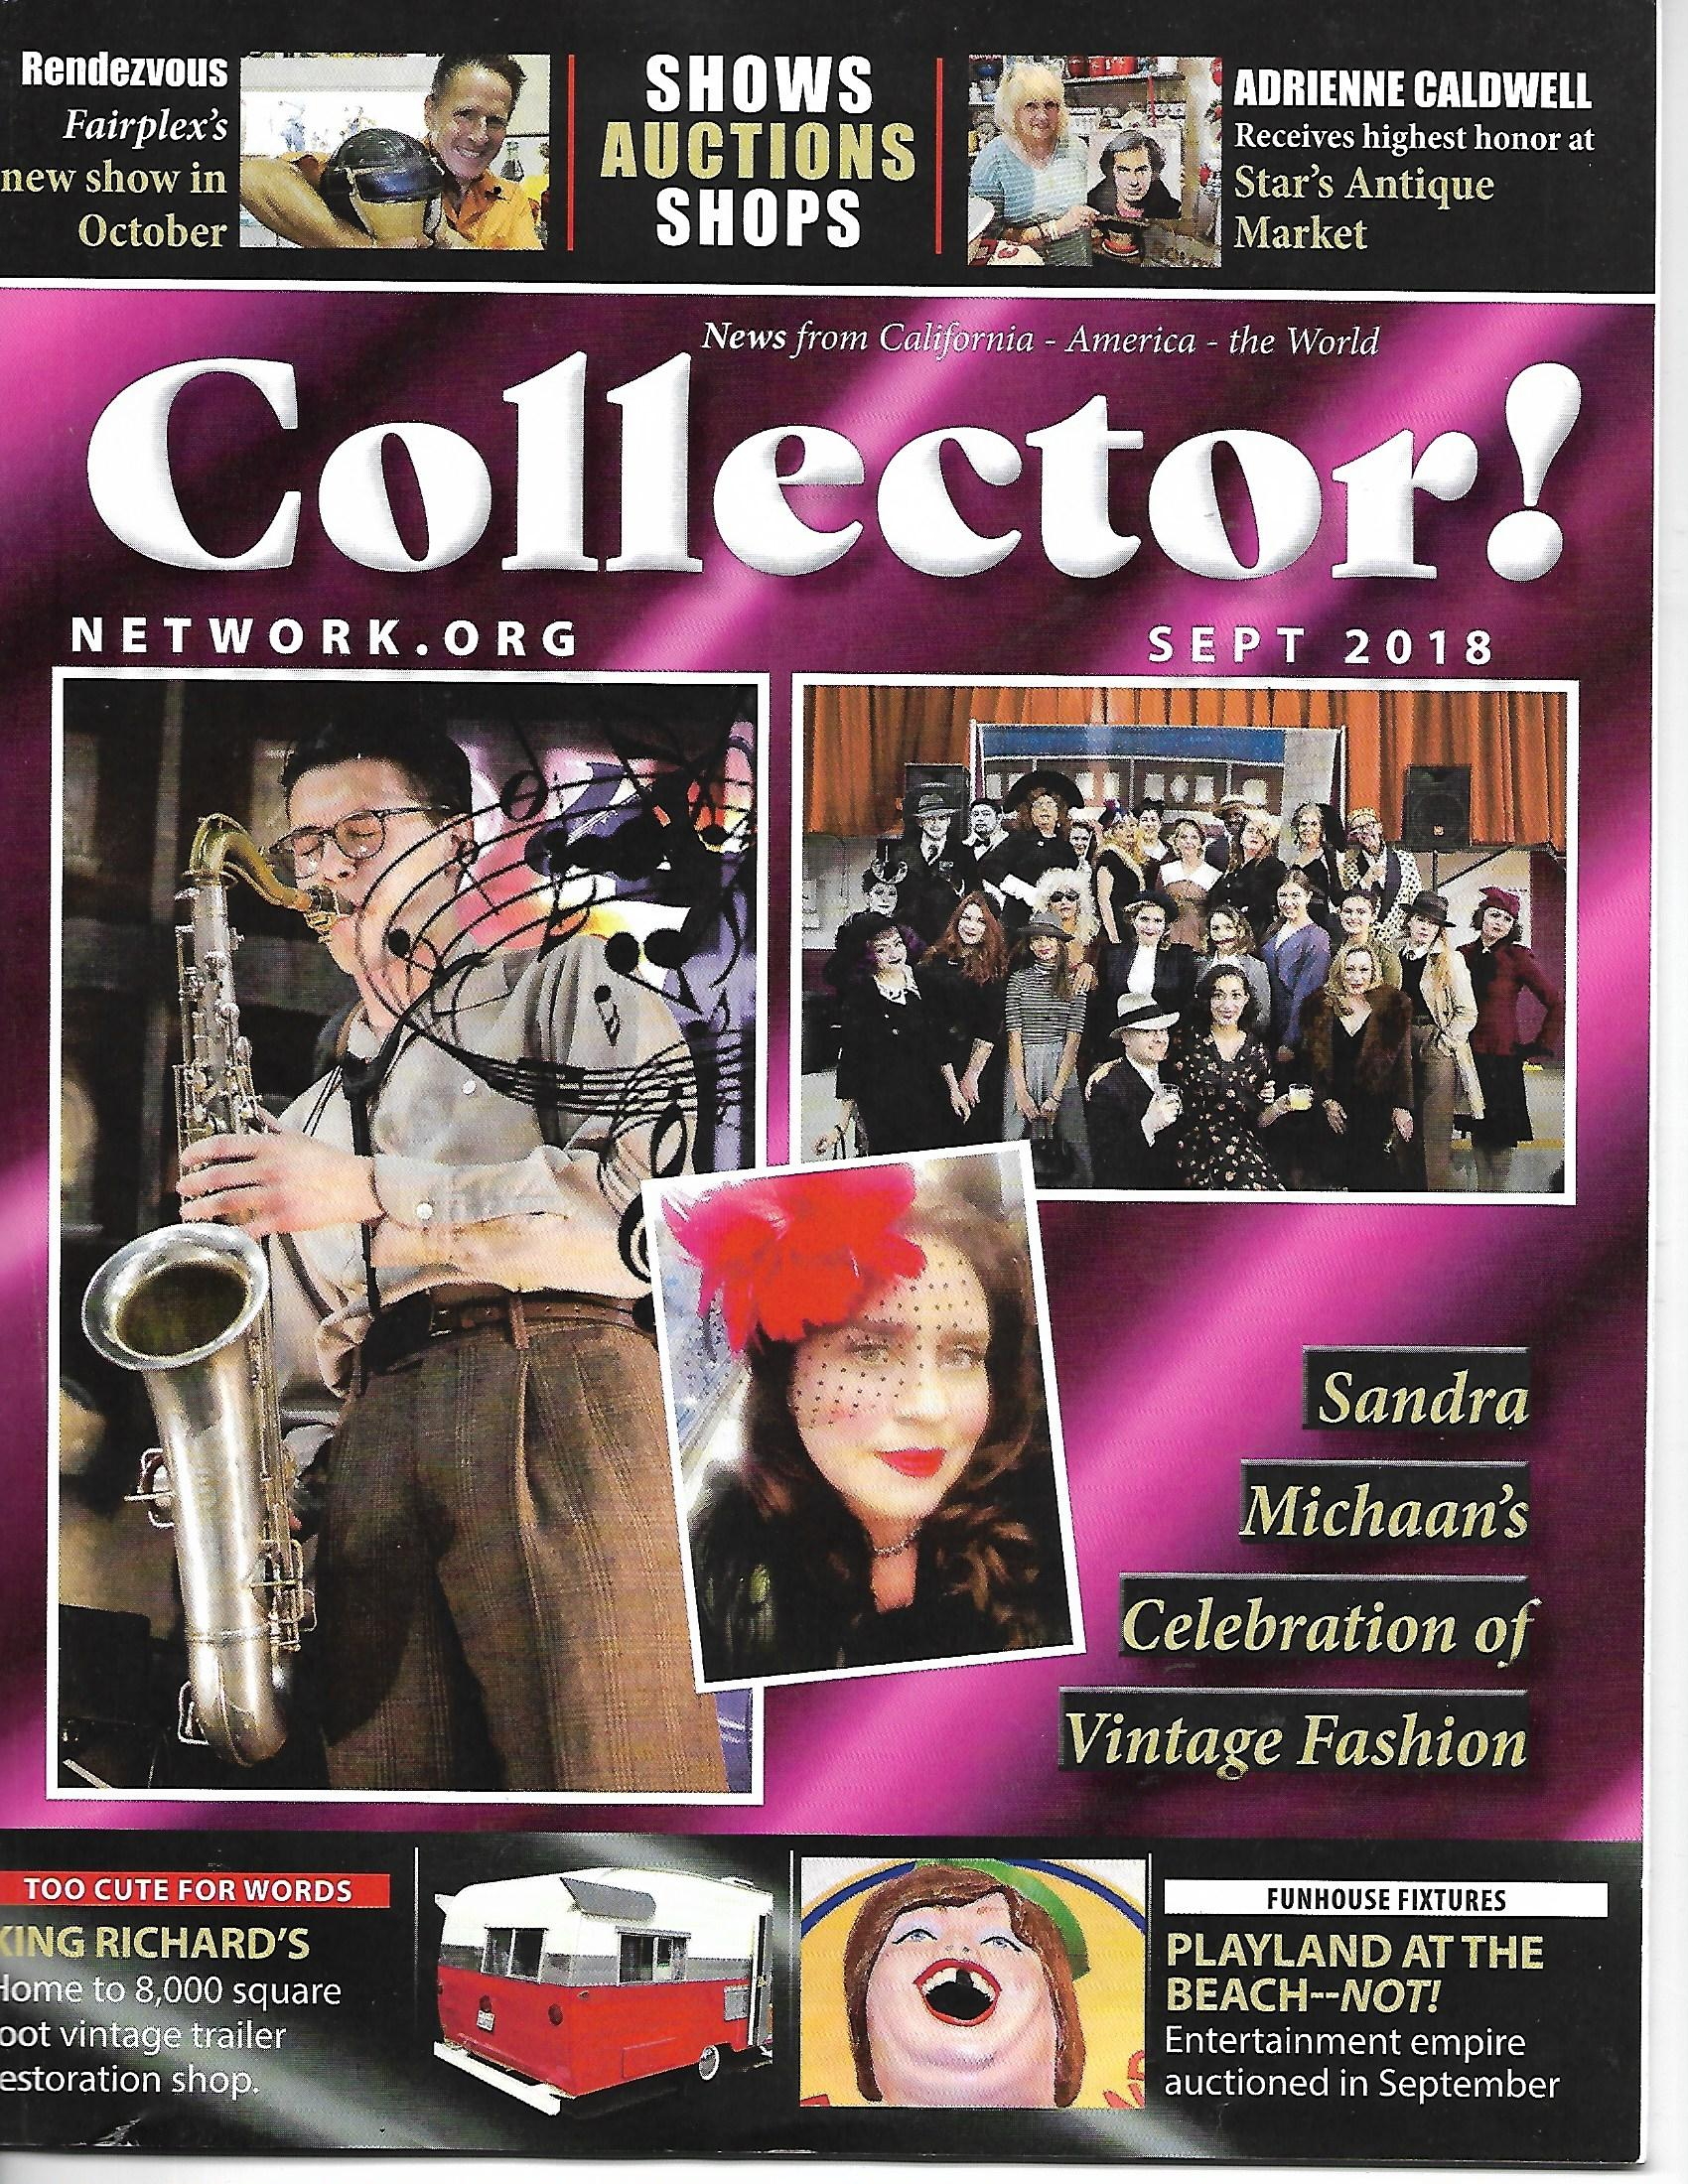 LAVRCollector1 (1)